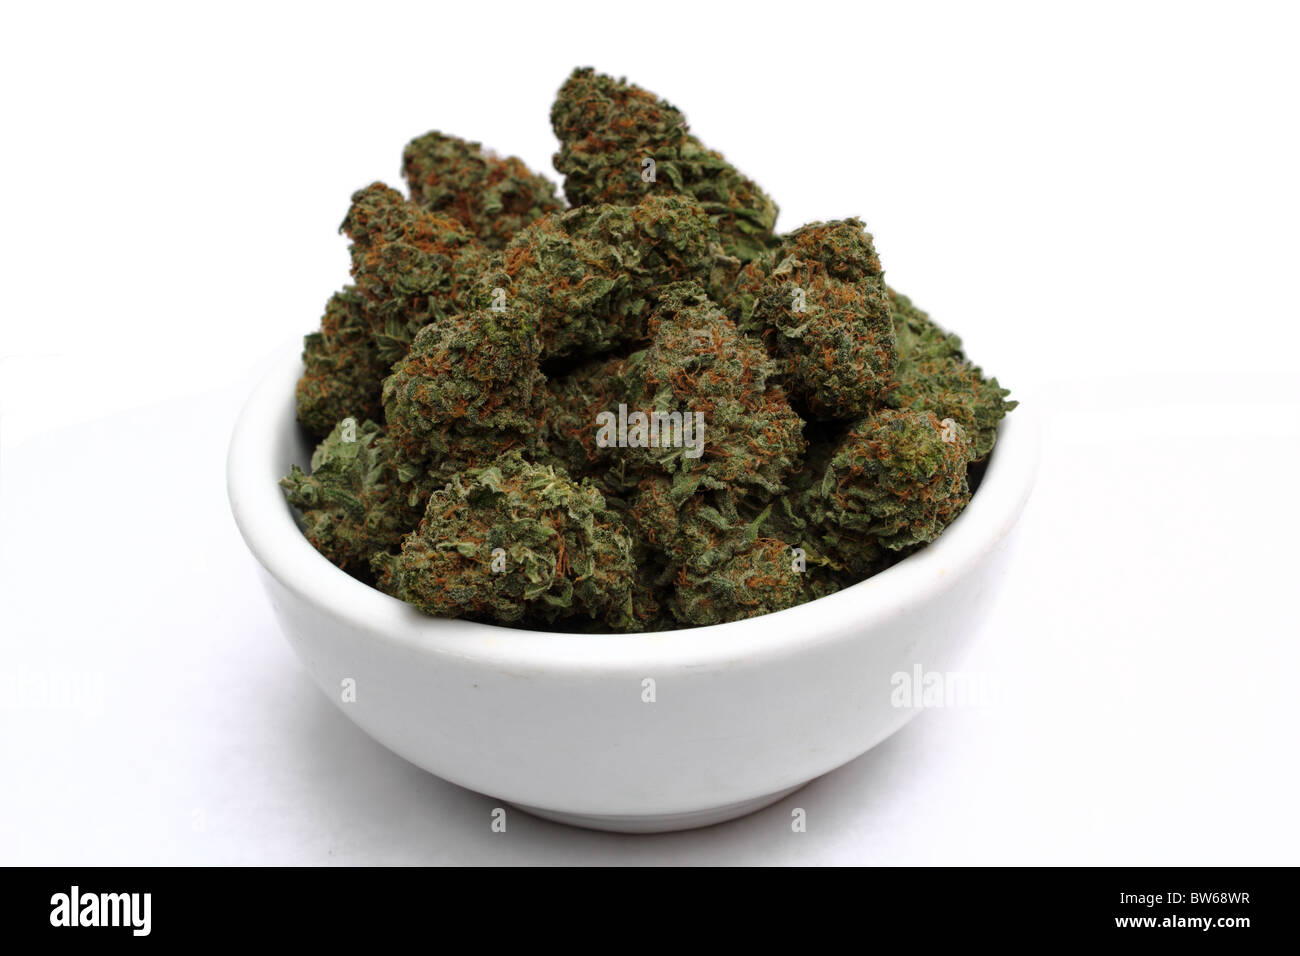 Marijuana ( Cannabis ) Bud up close showing detailed trichomes and red hairs on isolated white background in white - Stock Image